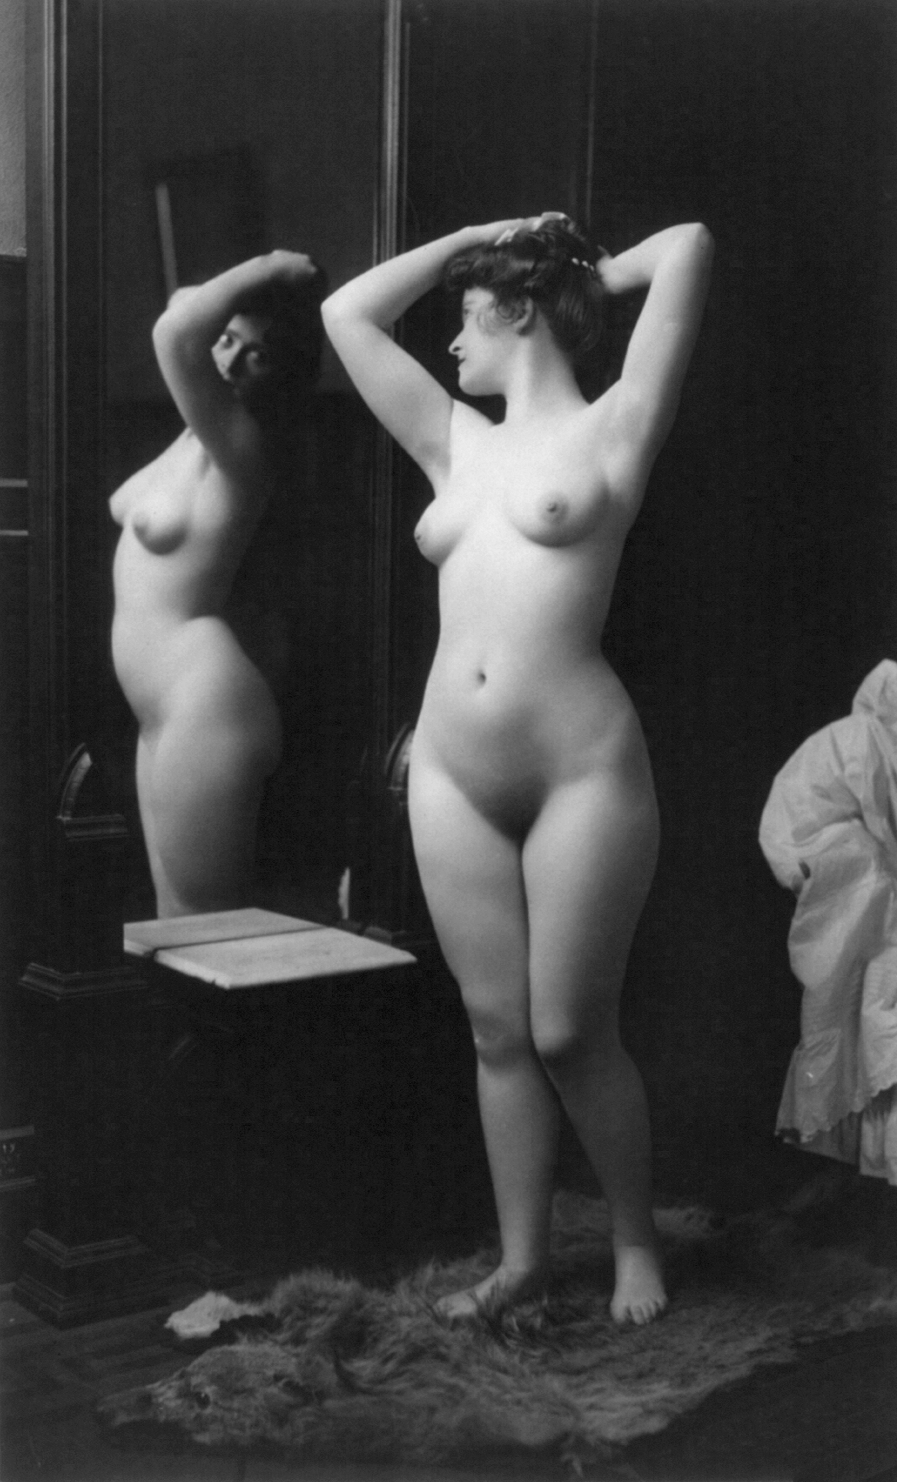 Vintage female nudes